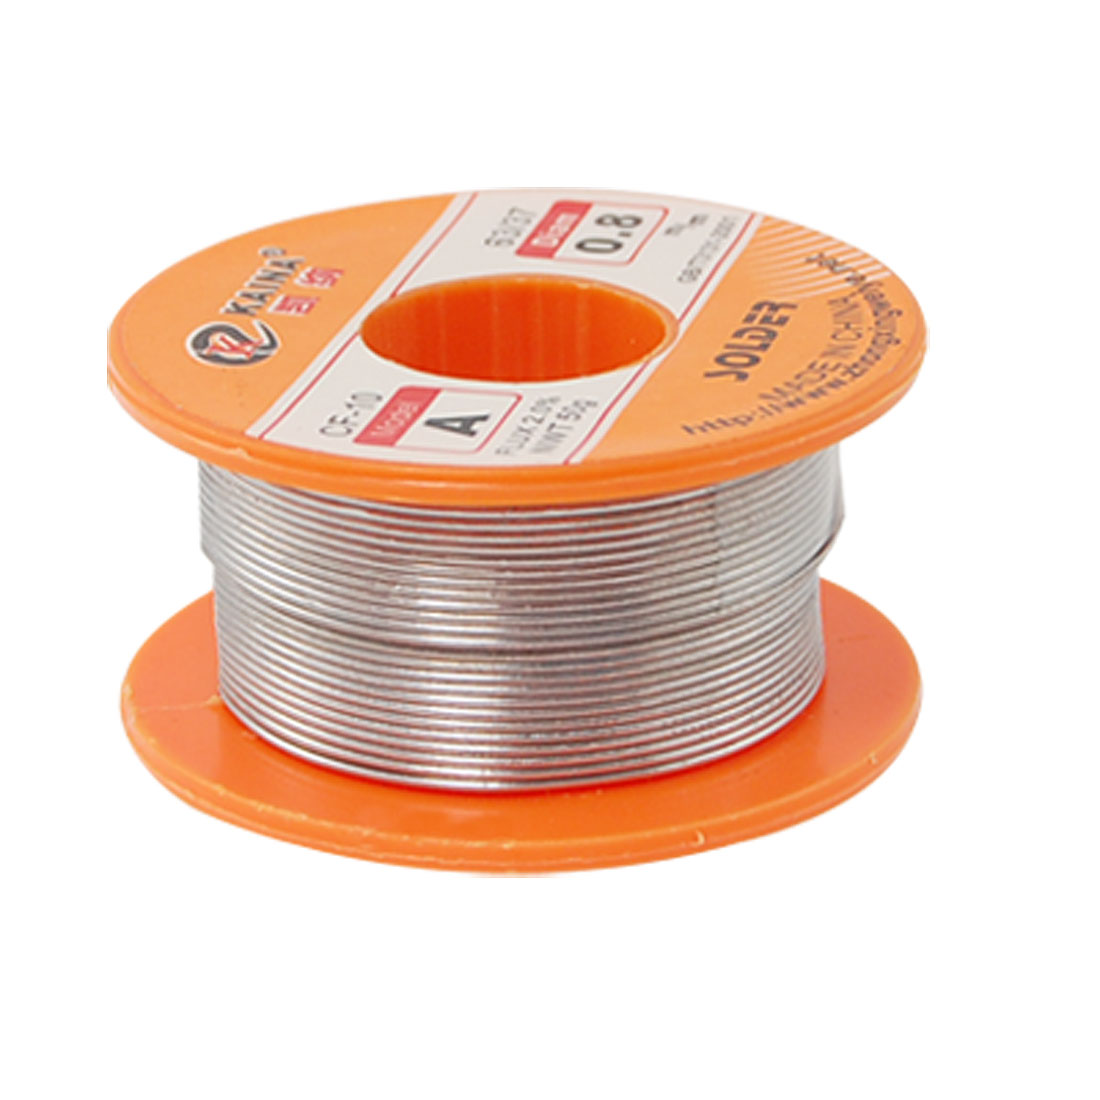 Unique Bargains 0.8mm 63/37 Tin Lead Roll Rosin Core Solder 2% Flux Soldering Wire Spool